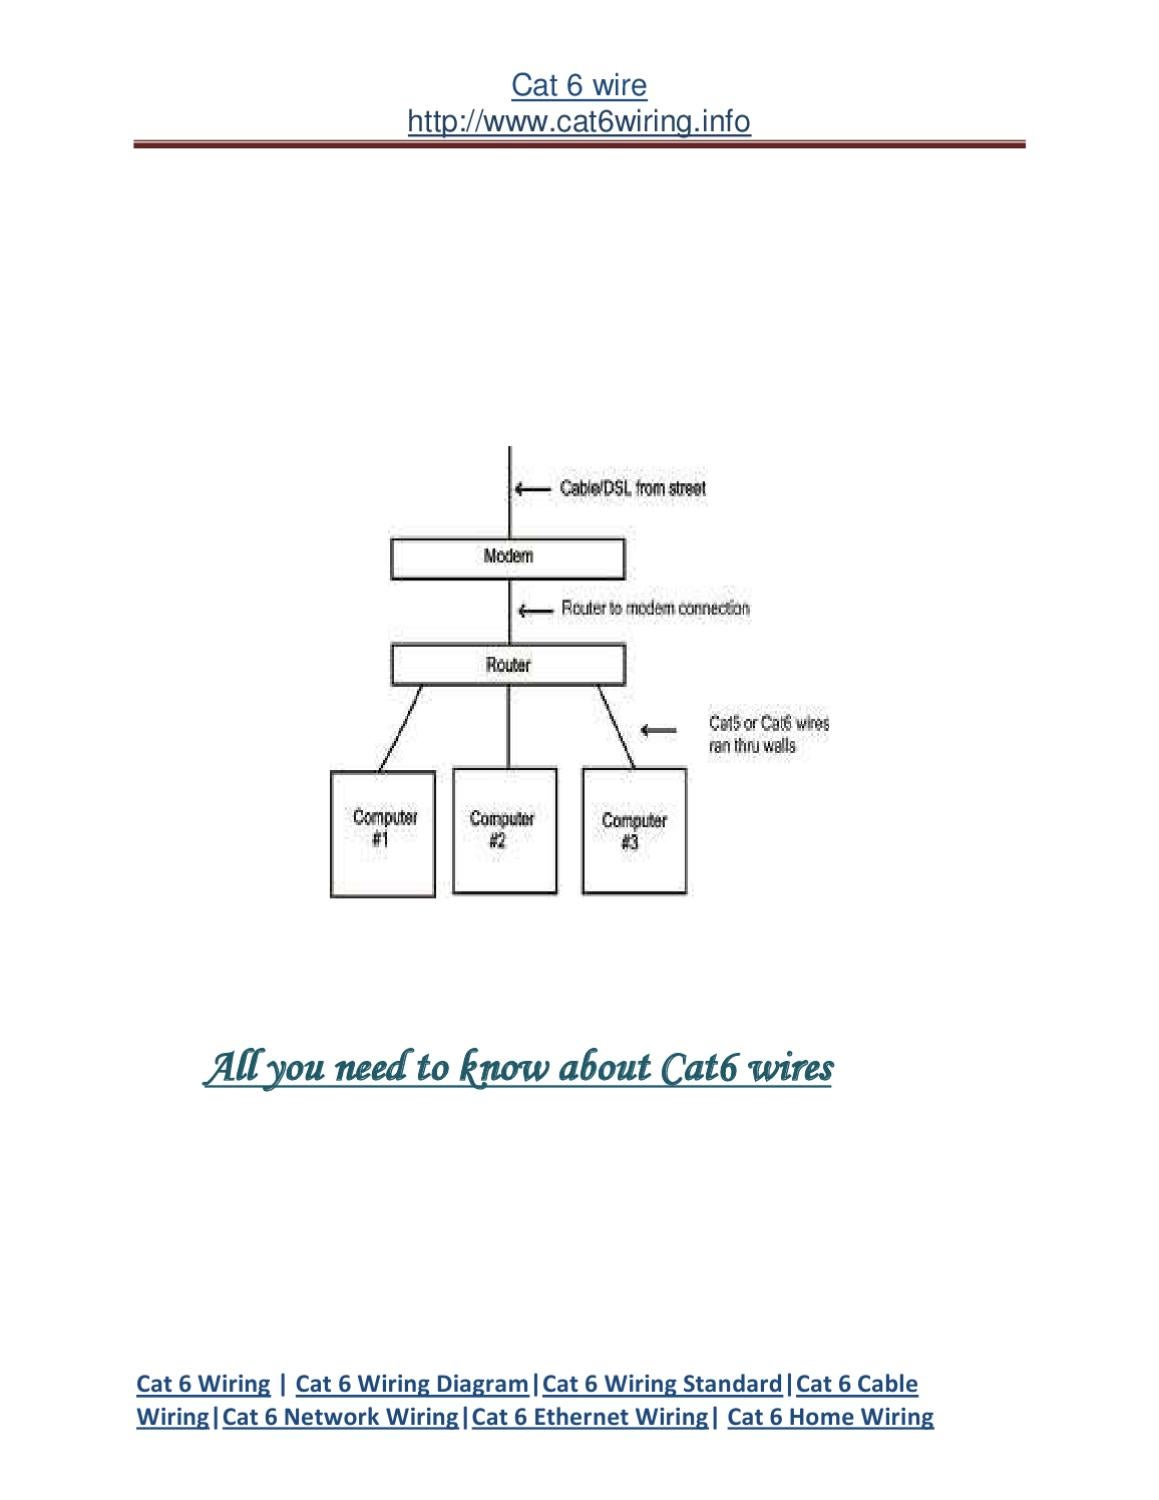 cat6 wire by Sanny Fairy - issuu Cat Home Wiring Diagram on cat 6 tools, cat c15 wiring-diagram, cat5 cable diagram, cat 6 cabling diagram, installation diagram, cat 6 jack diagram, cat 6 plug diagram, cat 5 wiring jack schematic, cat 6 pin diagram, cat 5 wiring home, cat 3 wiring, cat 6 connector, cat 5 diagram, cat cable diagram, cat 6 pinout, cat 5 vs cat 6, cat 5 wiring configuration, cat 6 connection diagram, 15-pin vga cable diagram, cat 6 punch down diagram,